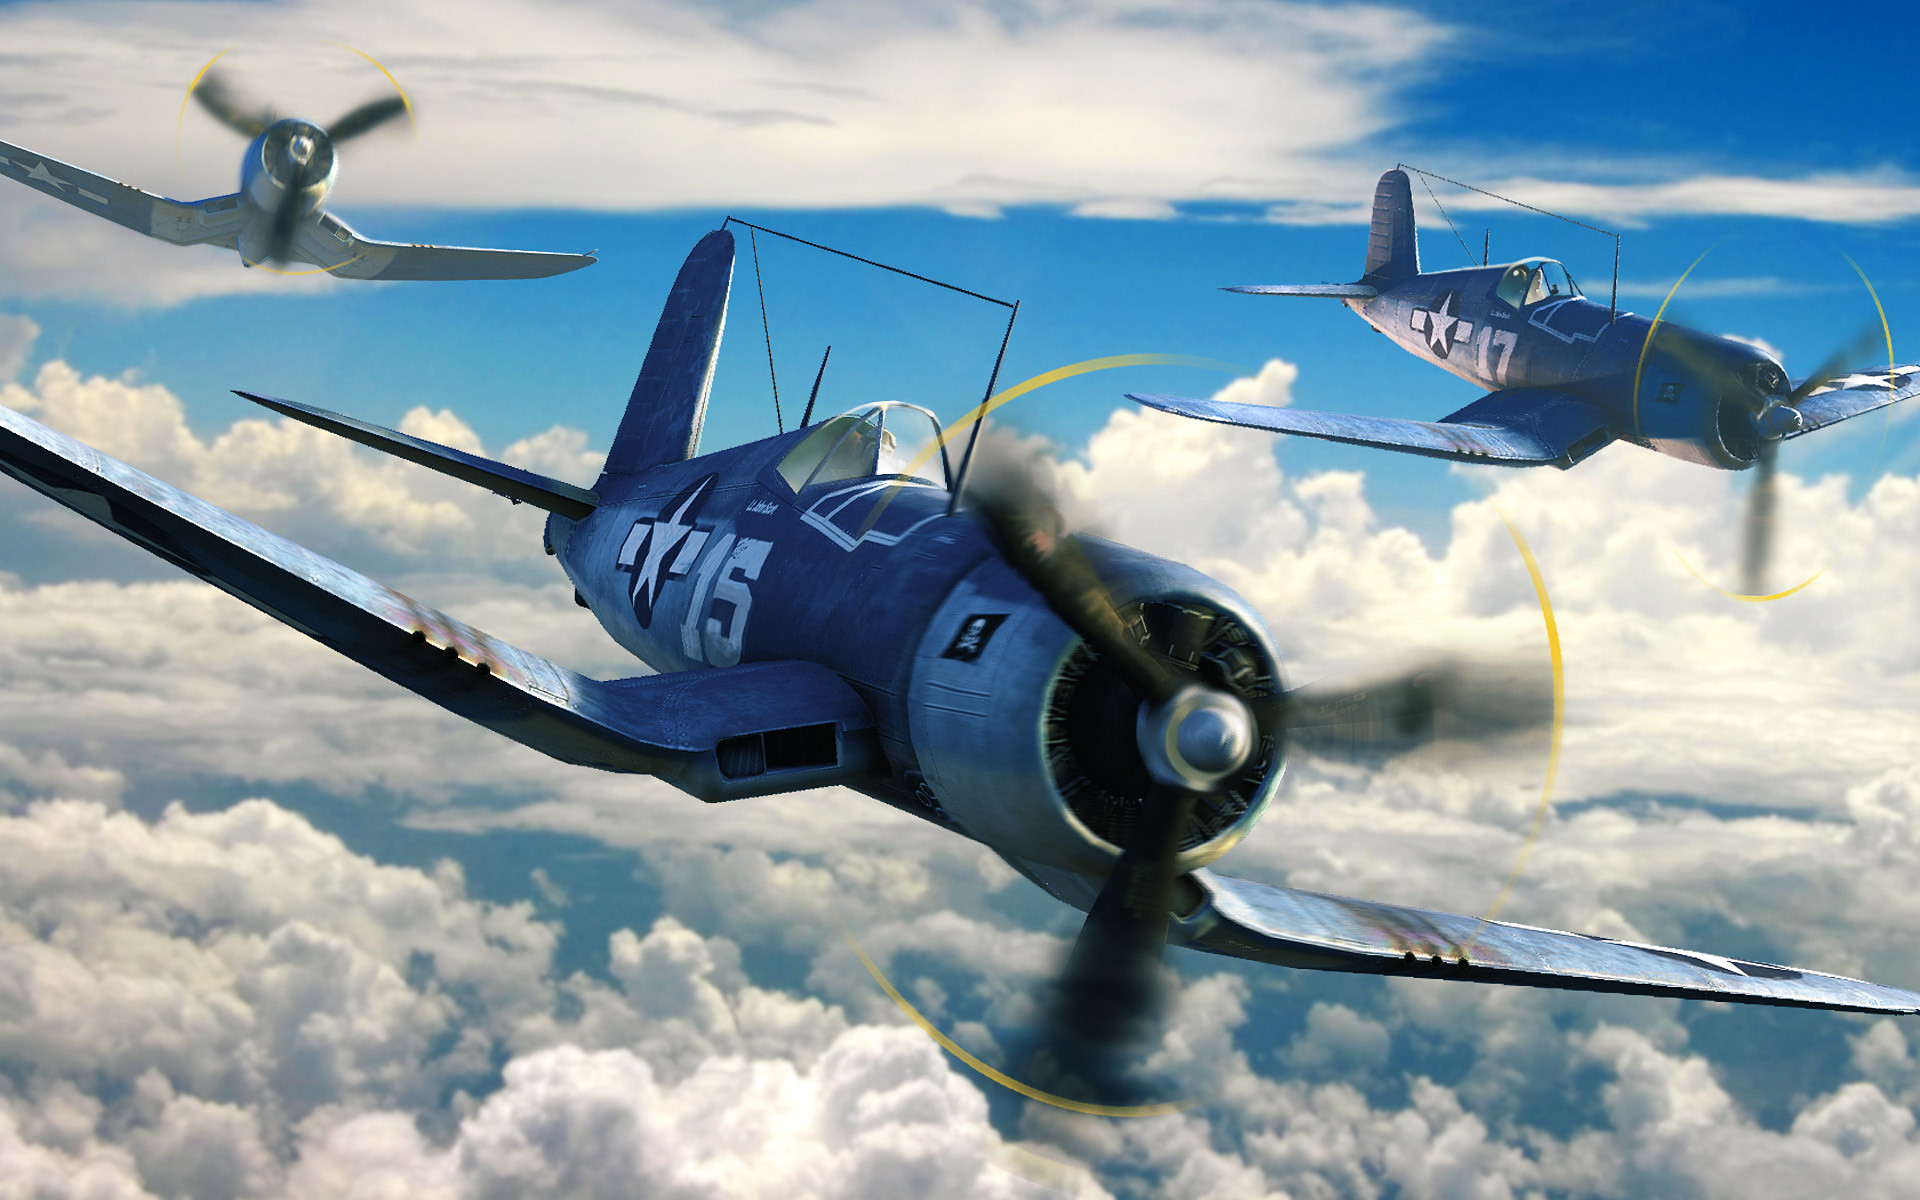 Vought f4u corsair wallpaper 67 images for Corsair wallpaper 4k